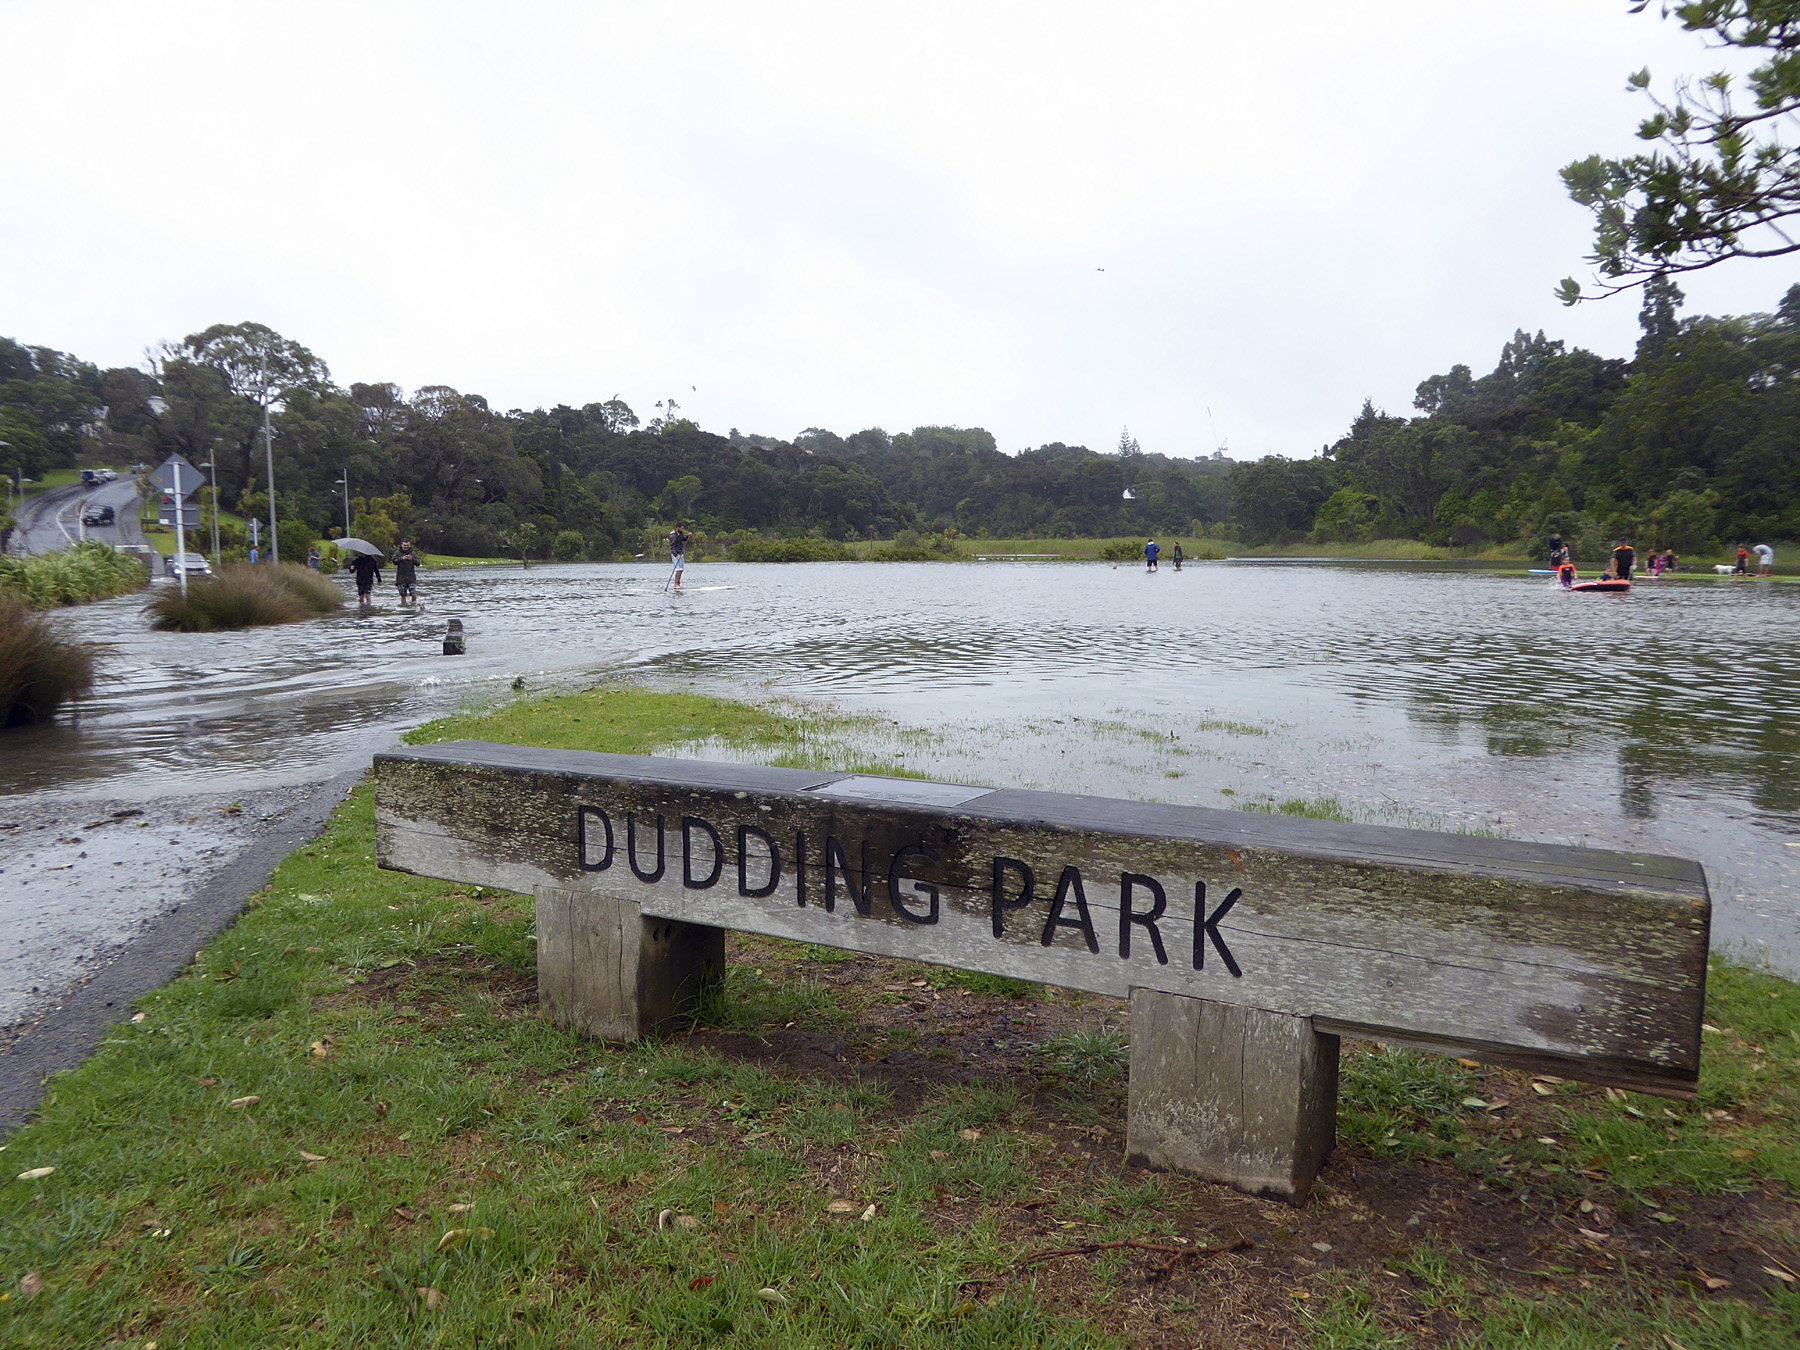 LSB-flooding-Dudding-Park-Jan-2018.jpg